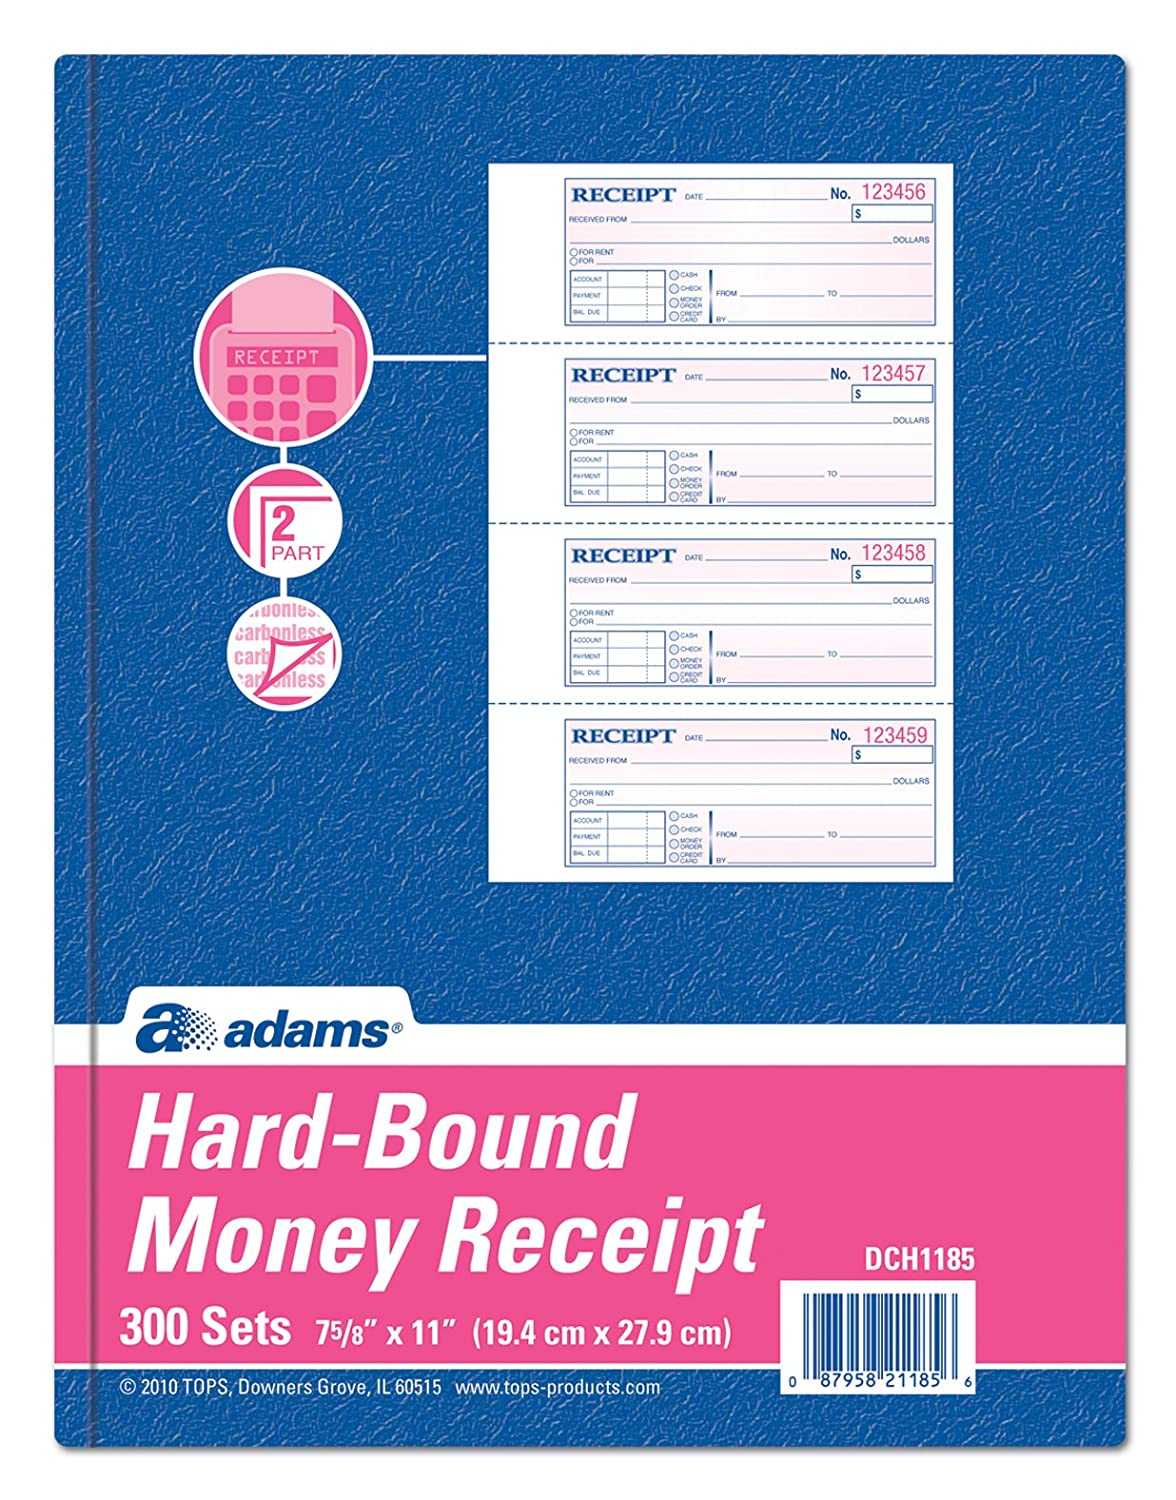 Adams Hardbound Receipt Book, 7.63 x 11 Inches, 2-Part, Carbonless, White/Canary, 4 Form Sets per Page, 300 Sets per Book (DCH1185) TOPS Business Forms Inc.